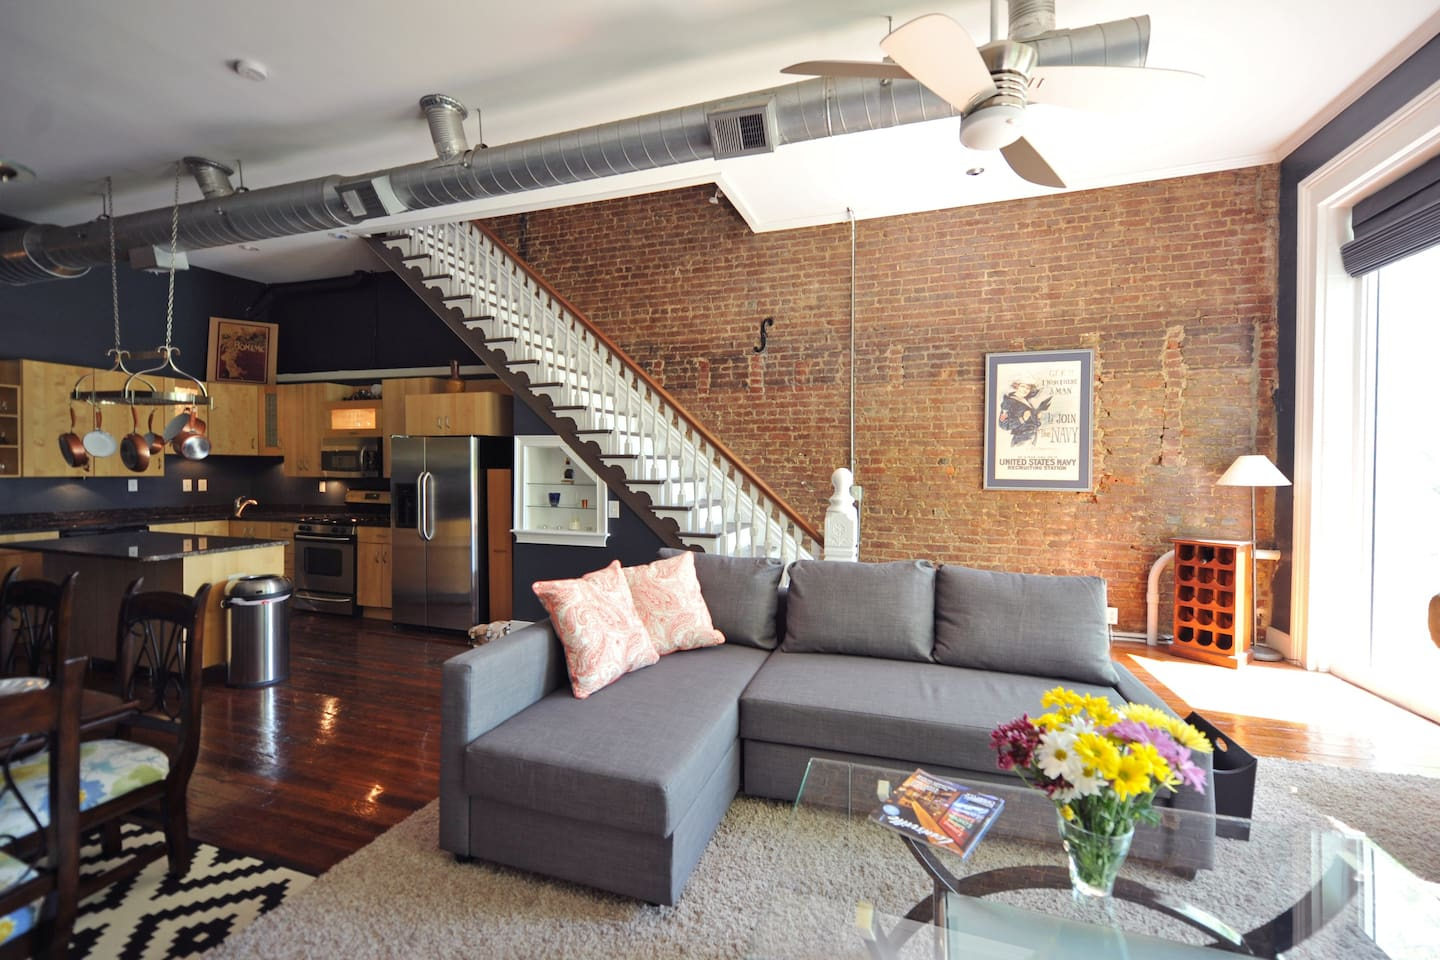 150yr old brick, hand carved staircase and wood floors